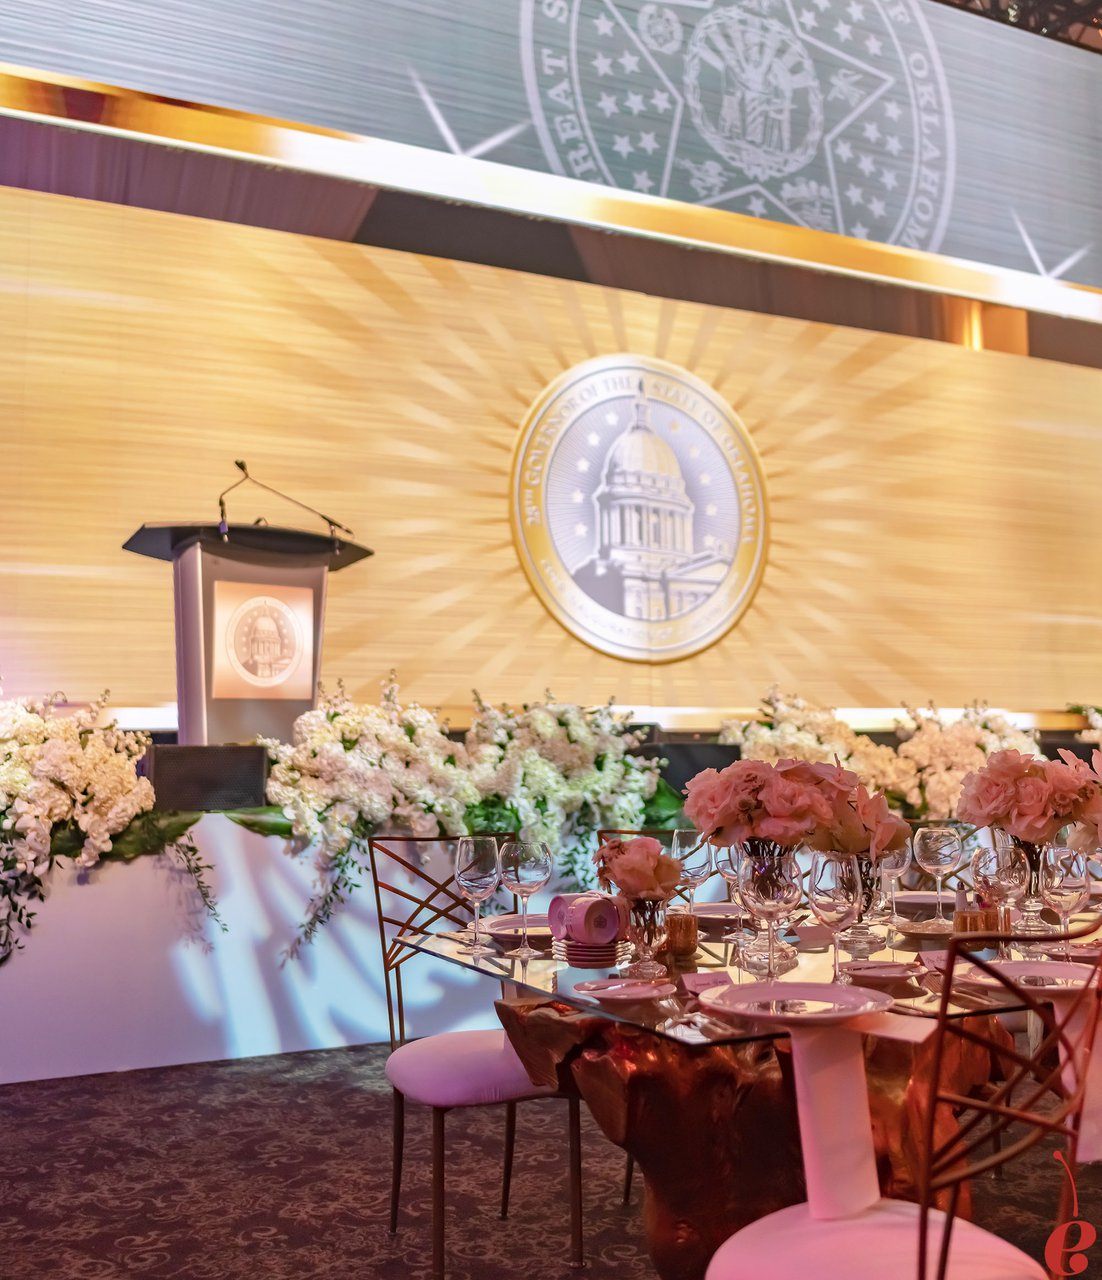 Oklahoma Governor's Inaugural Ball  photo 1557500936417_governor%20seal%20.jpg